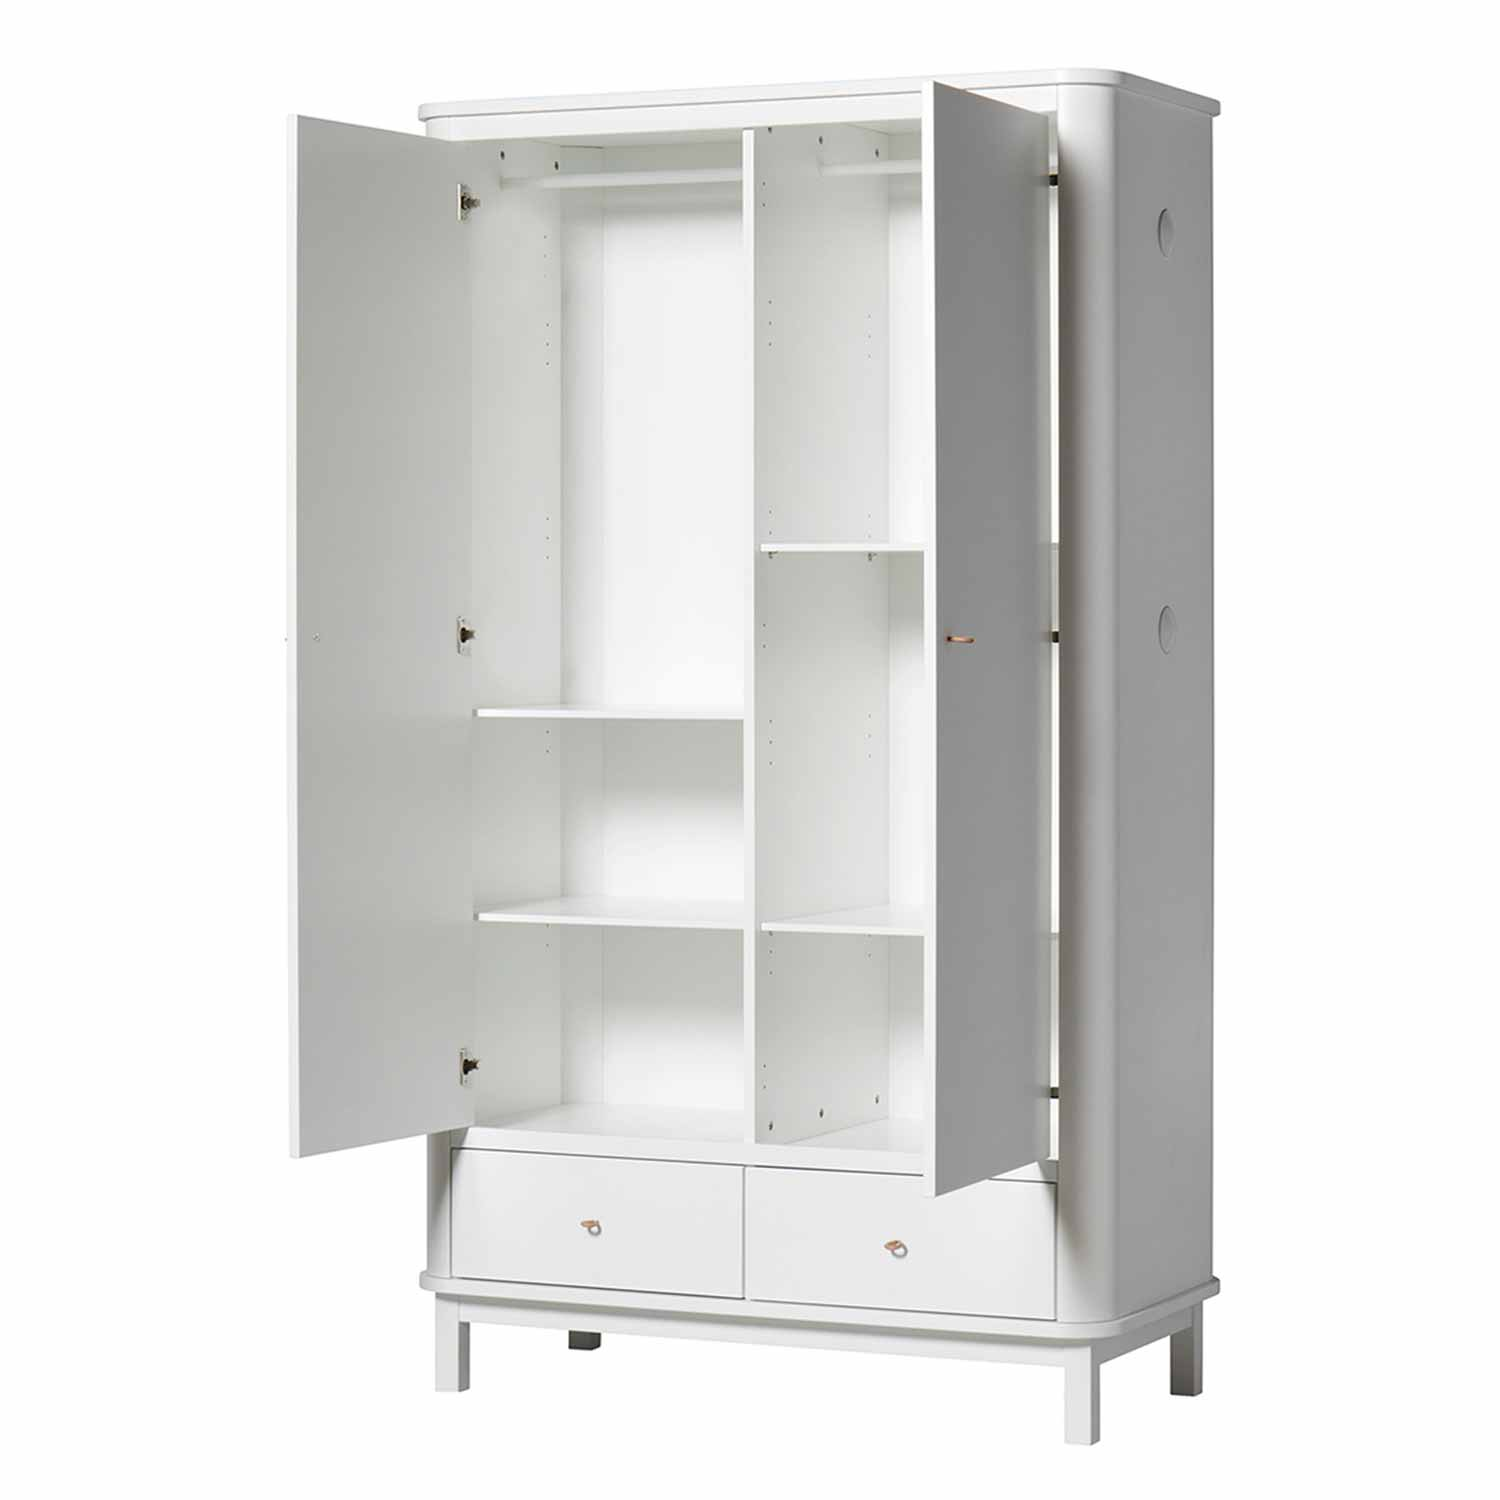 Oliver Furniture Wood Kleiderschrank 2 Turig Weiss Engel Bengel